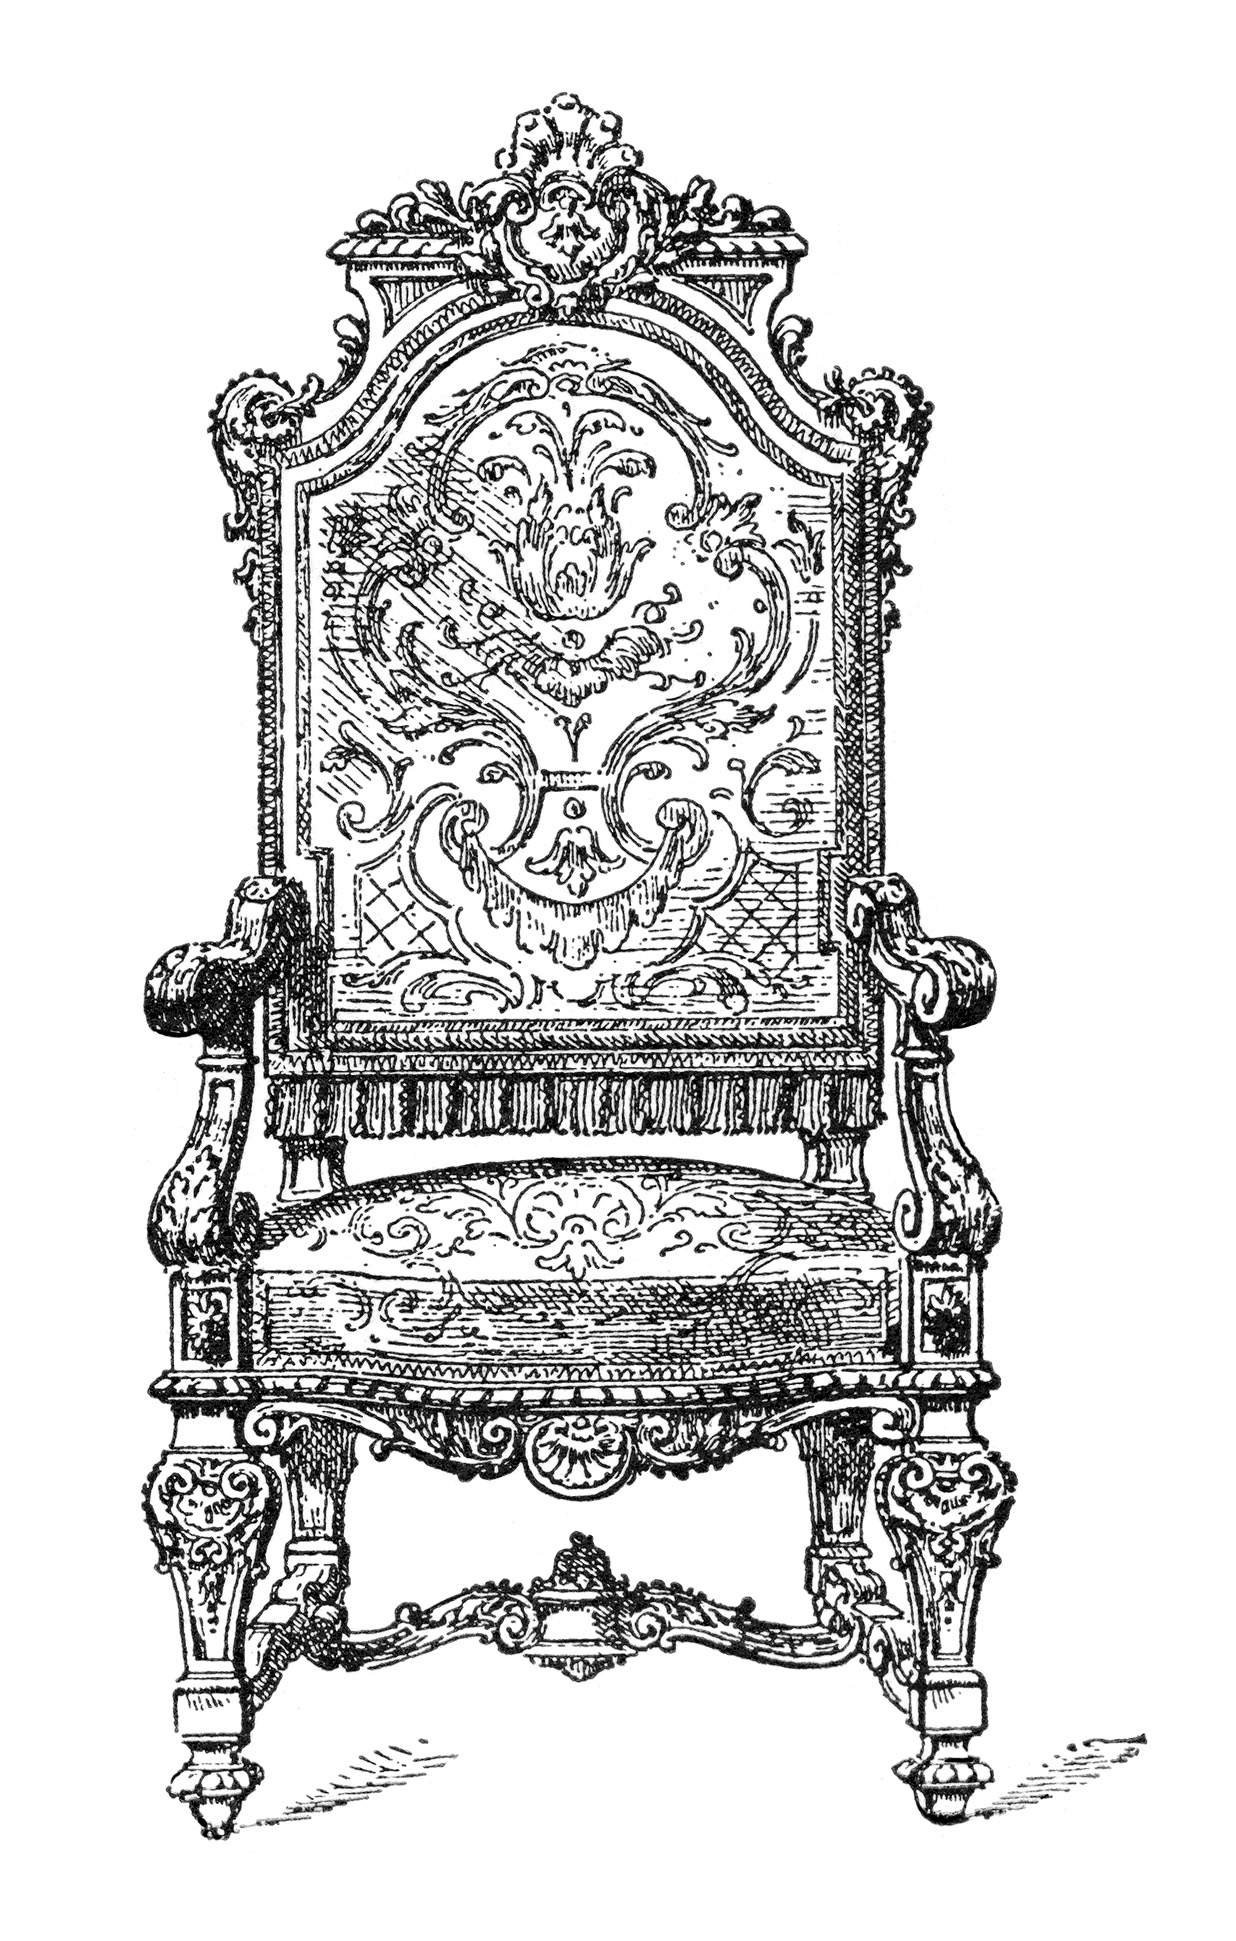 Throne clipart black and white svg black and white download Free Throne Cliparts, Download Free Clip Art, Free Clip Art ... svg black and white download